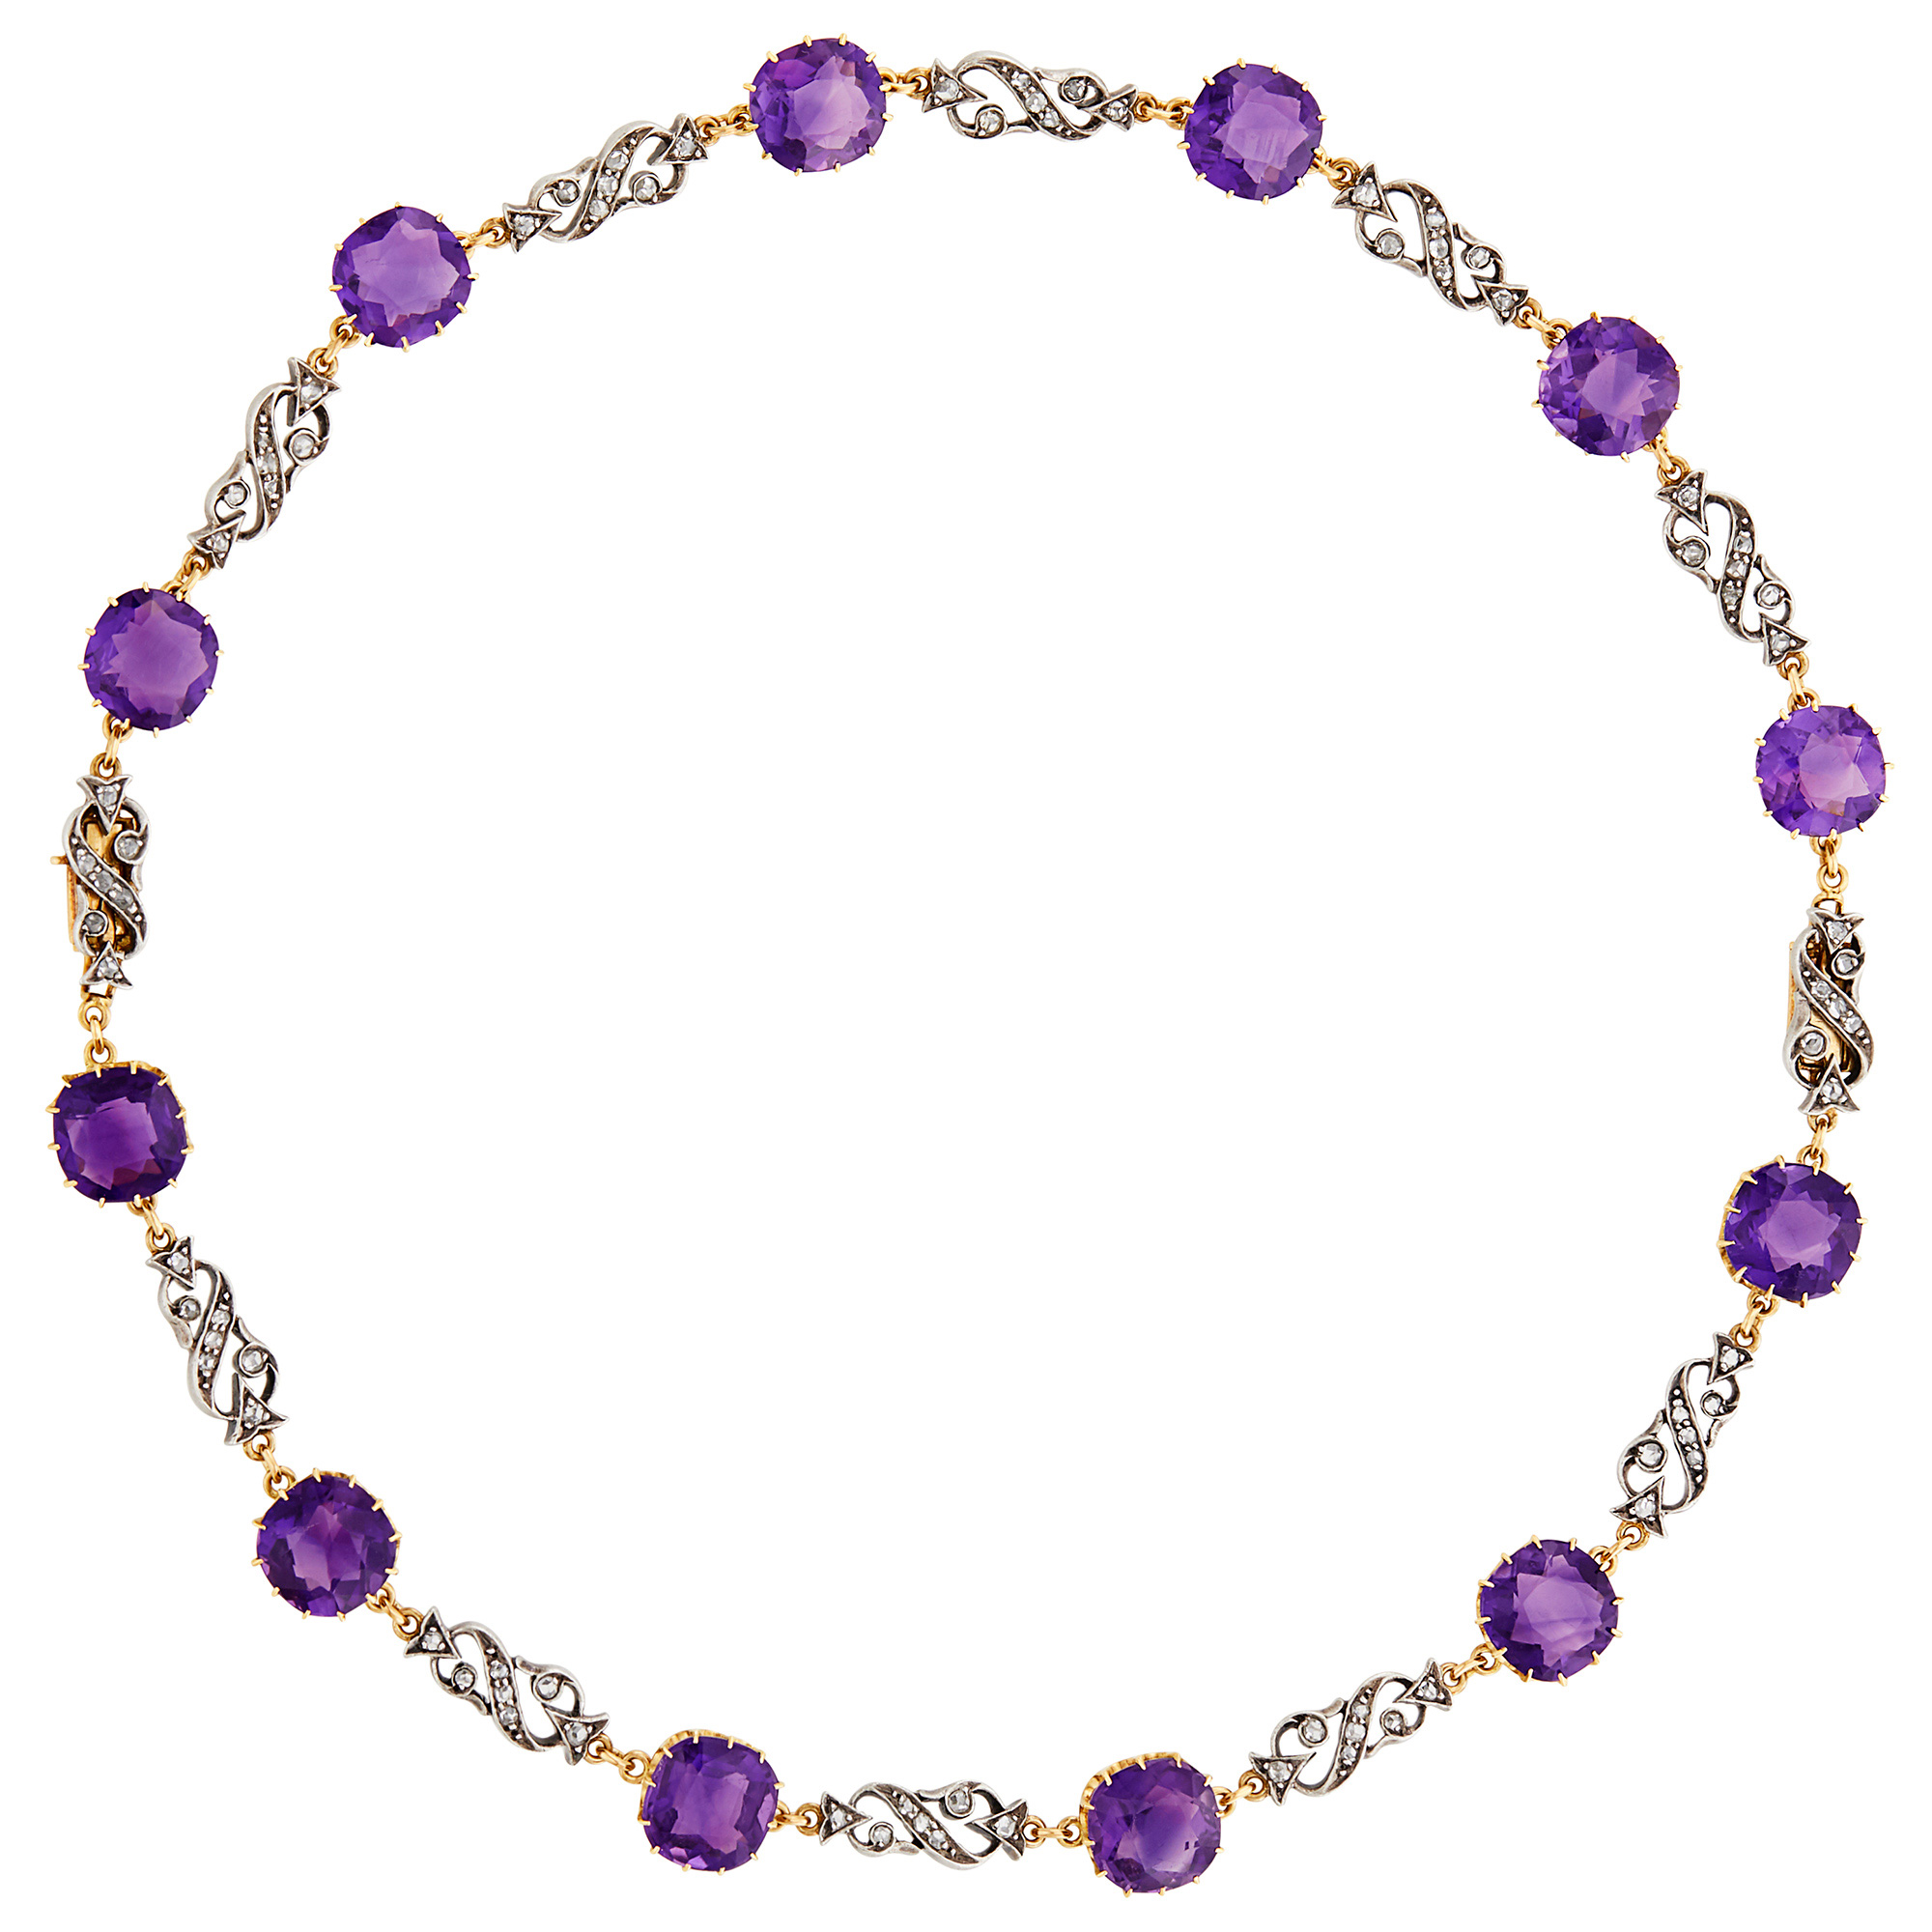 Lot image - Antique Silver, Gold, Amethyst and Diamond Necklace/Bracelets Combination